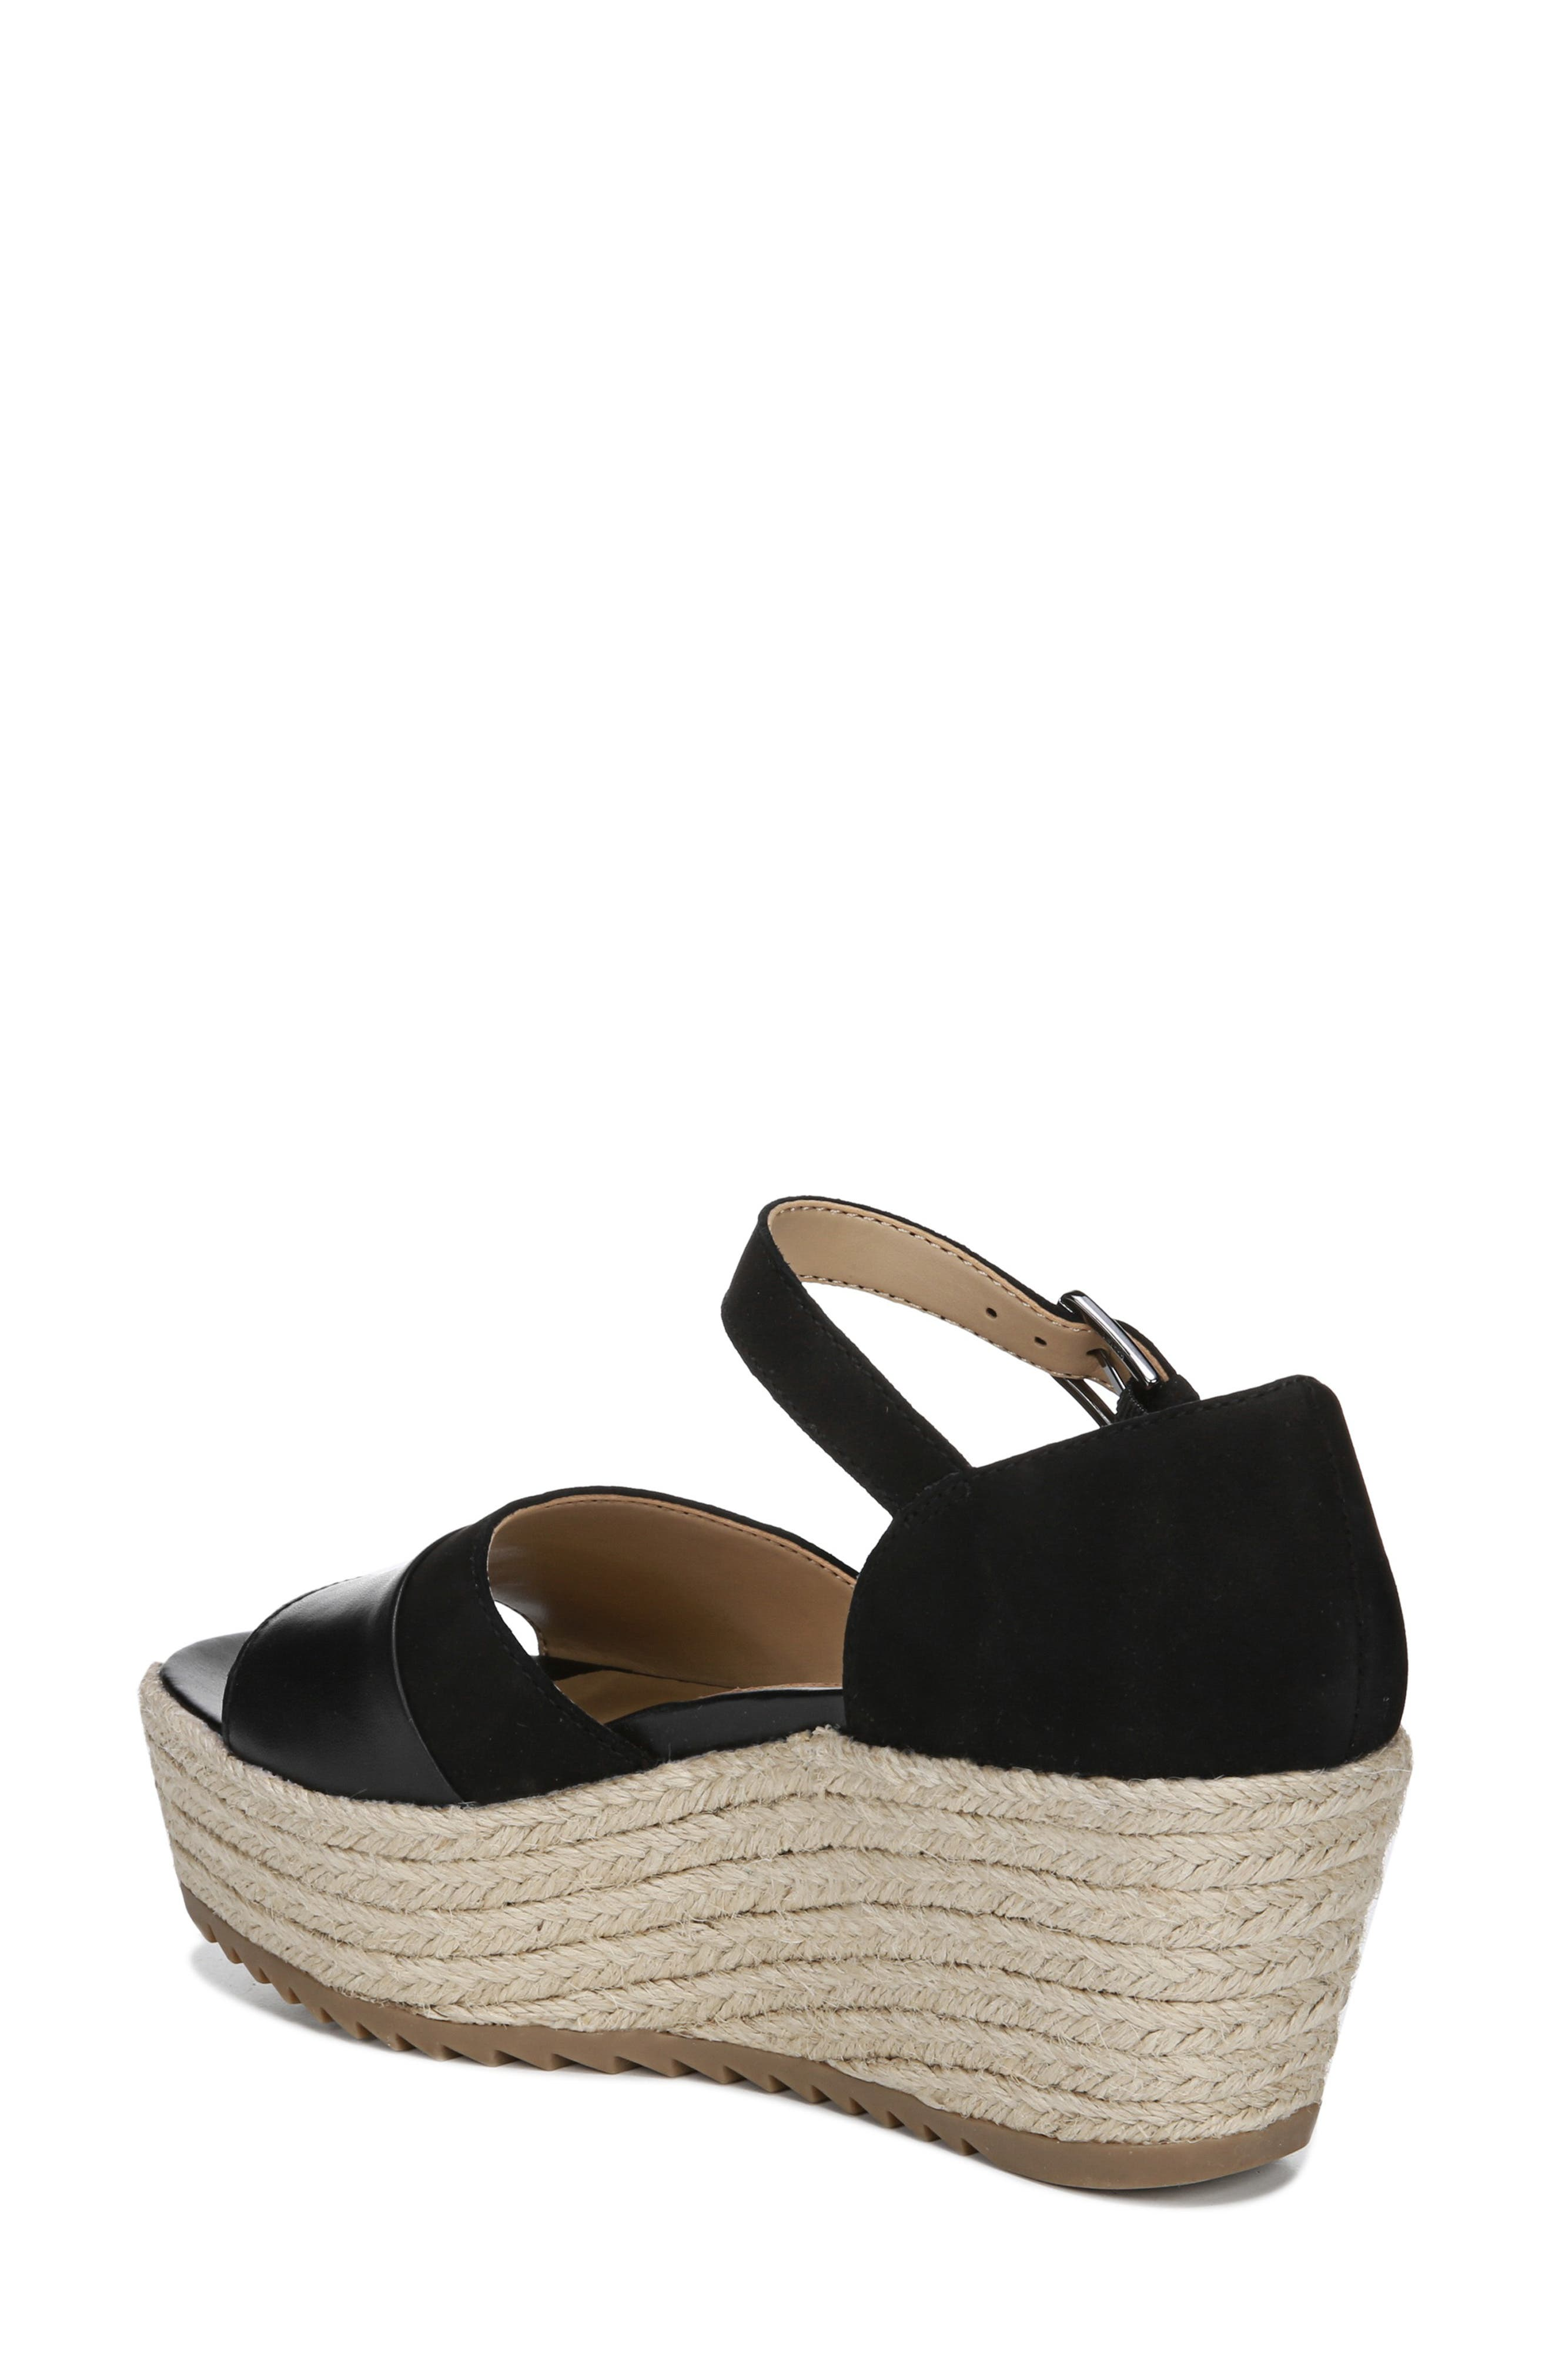 NATURALIZER, Opal Espadrille Platform Wedge Sandal, Alternate thumbnail 2, color, BLACK LEATHER